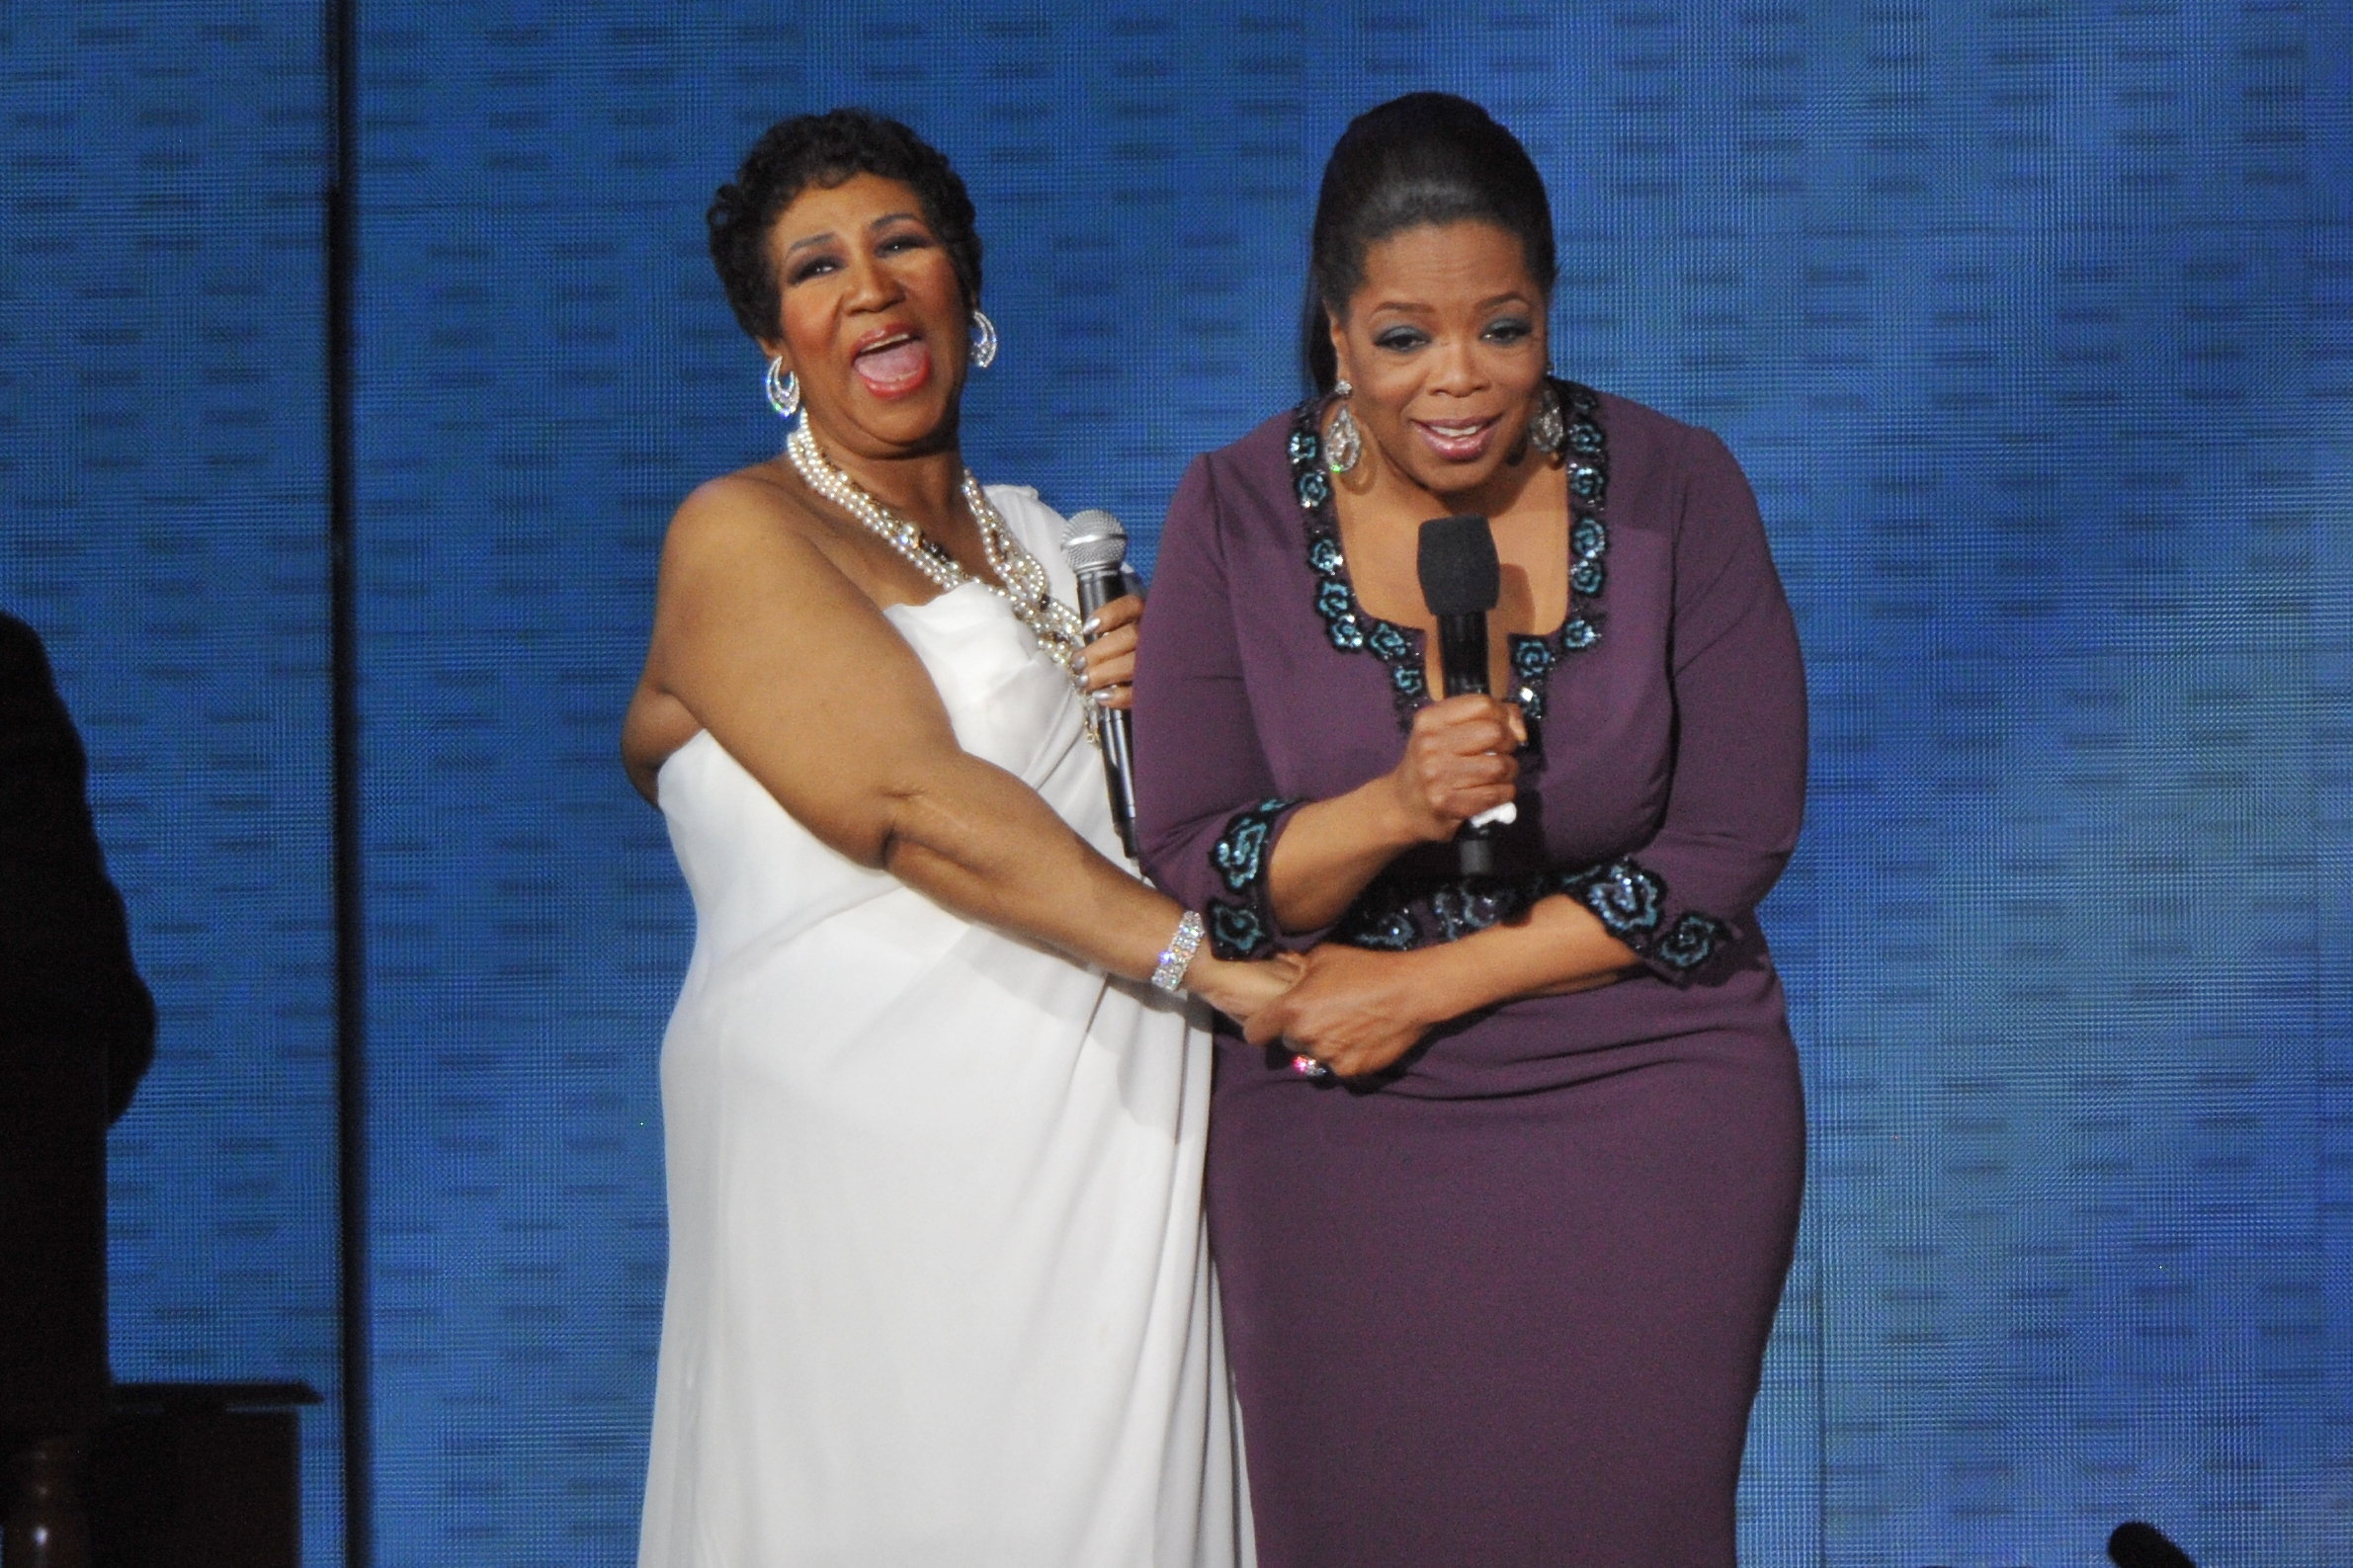 Aretha Franklin and{ }Oprah Winfrey during 'Surprise Oprah! A Farewell Spectacular' at the United Center in Chicago, Illinois. (When: May 17 2011. Credit: Ray Garbo/WENN.com)